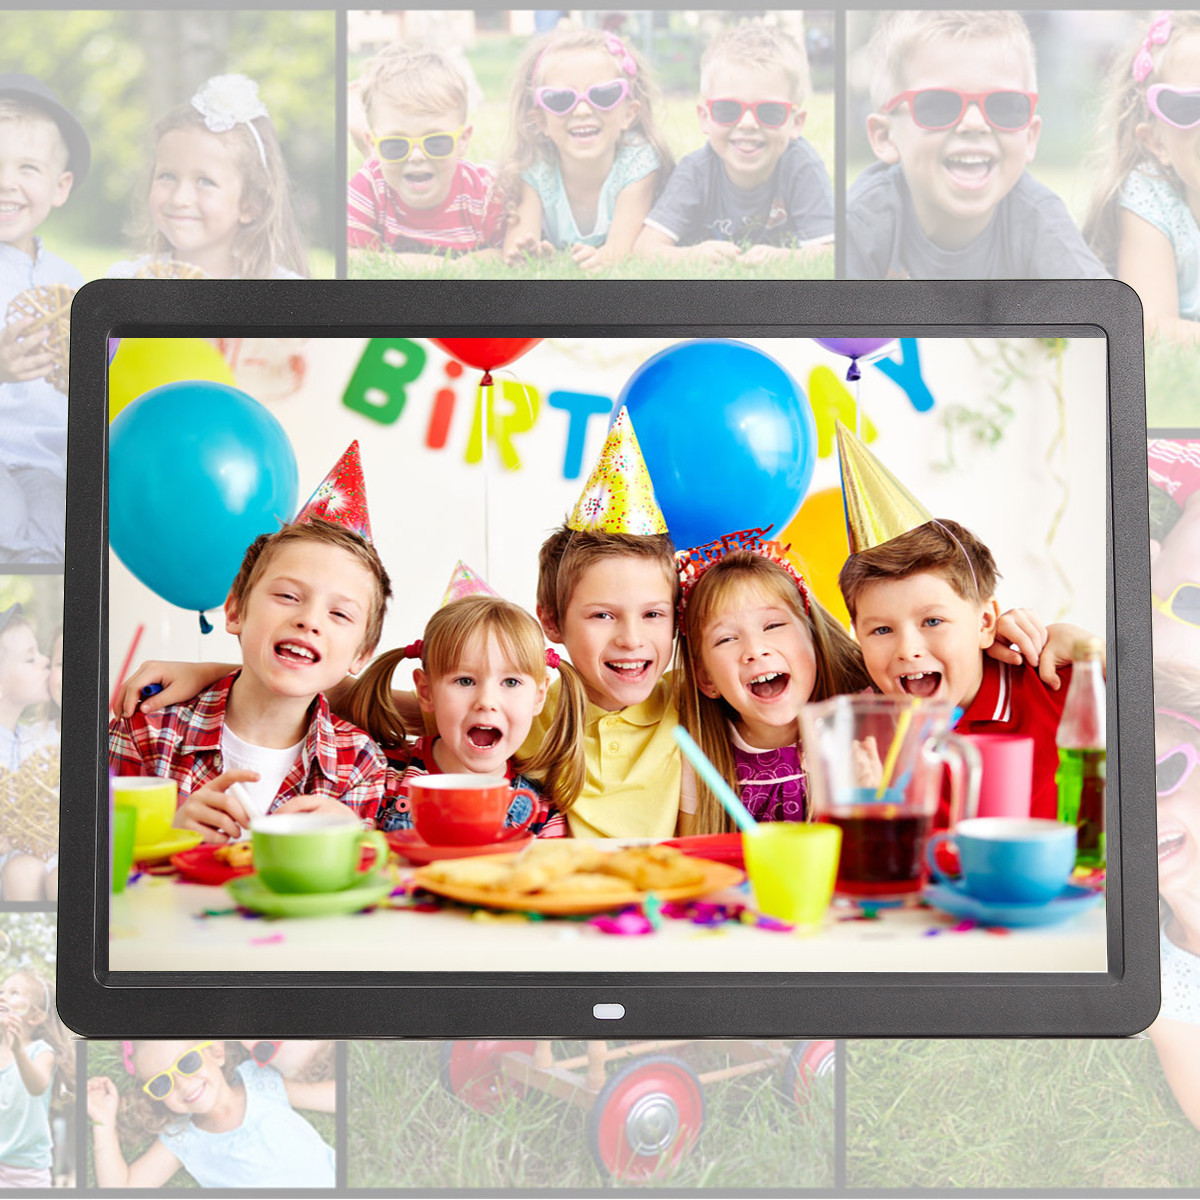 15.6 inch HD Digital Photo Frames Gallery Advertising Machine with Remote Control